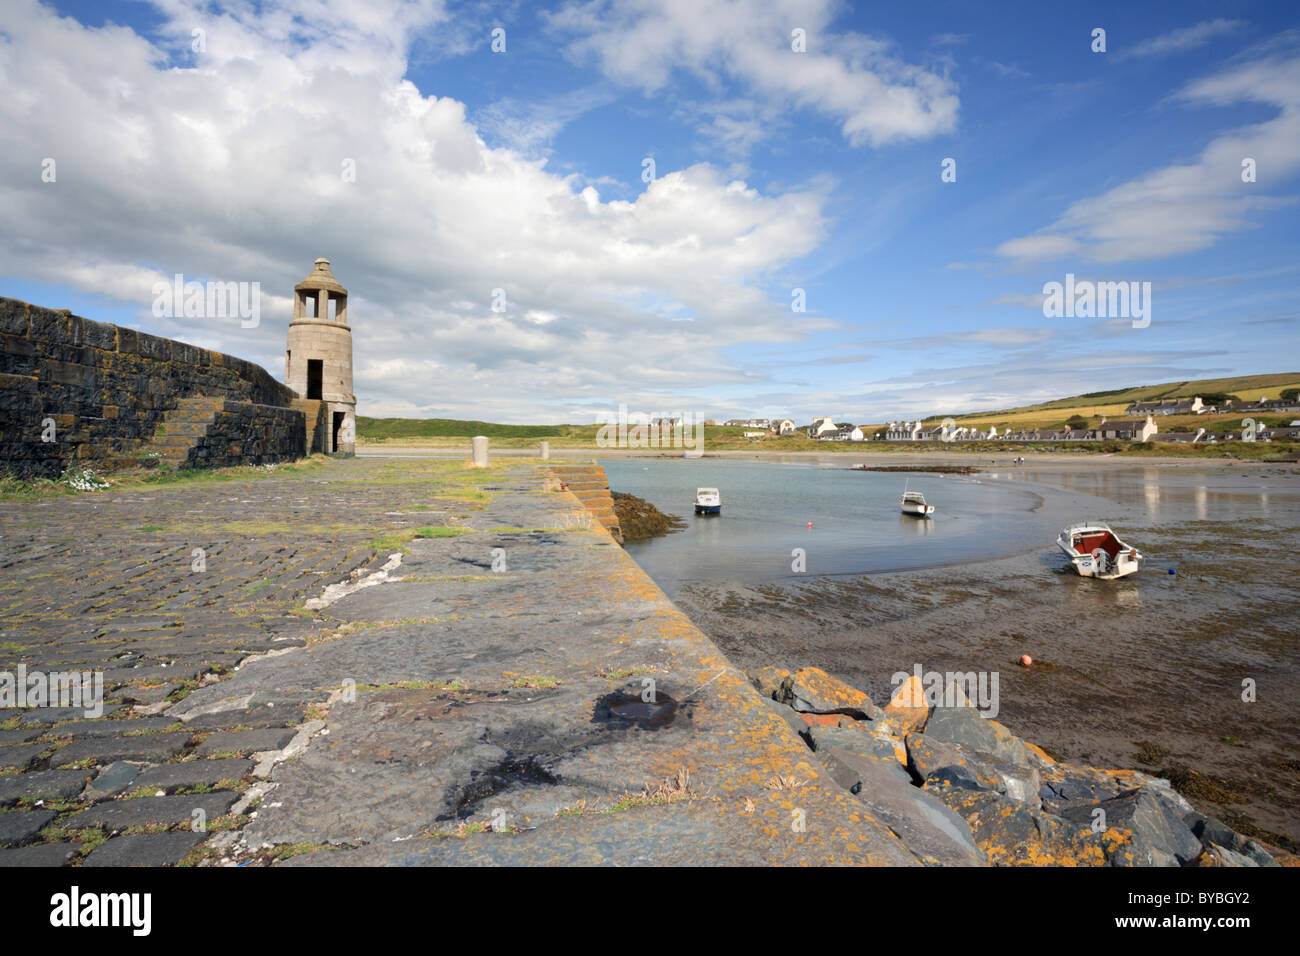 Port Logan on the Rhins Peninsular in south west Scotland - Stock Image